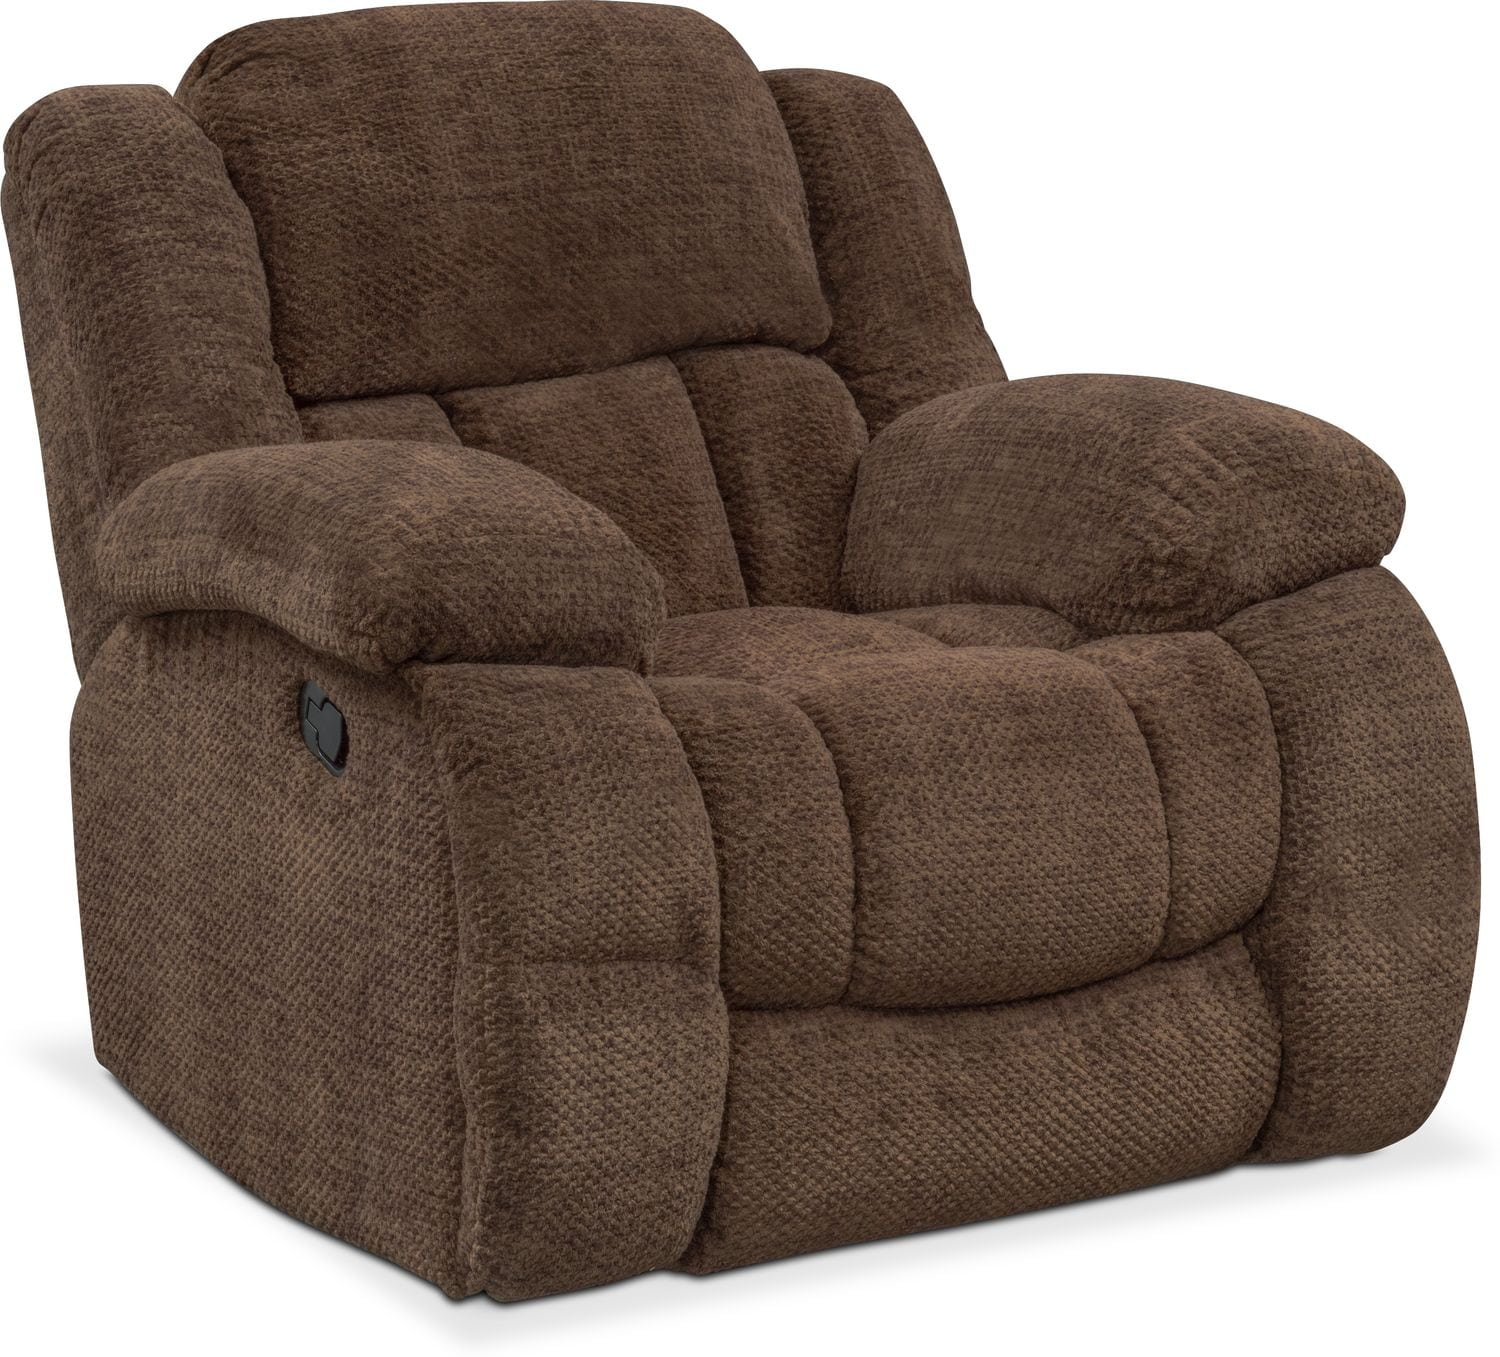 Living Room Furniture   Turbo Glider Recliner   Chocolate